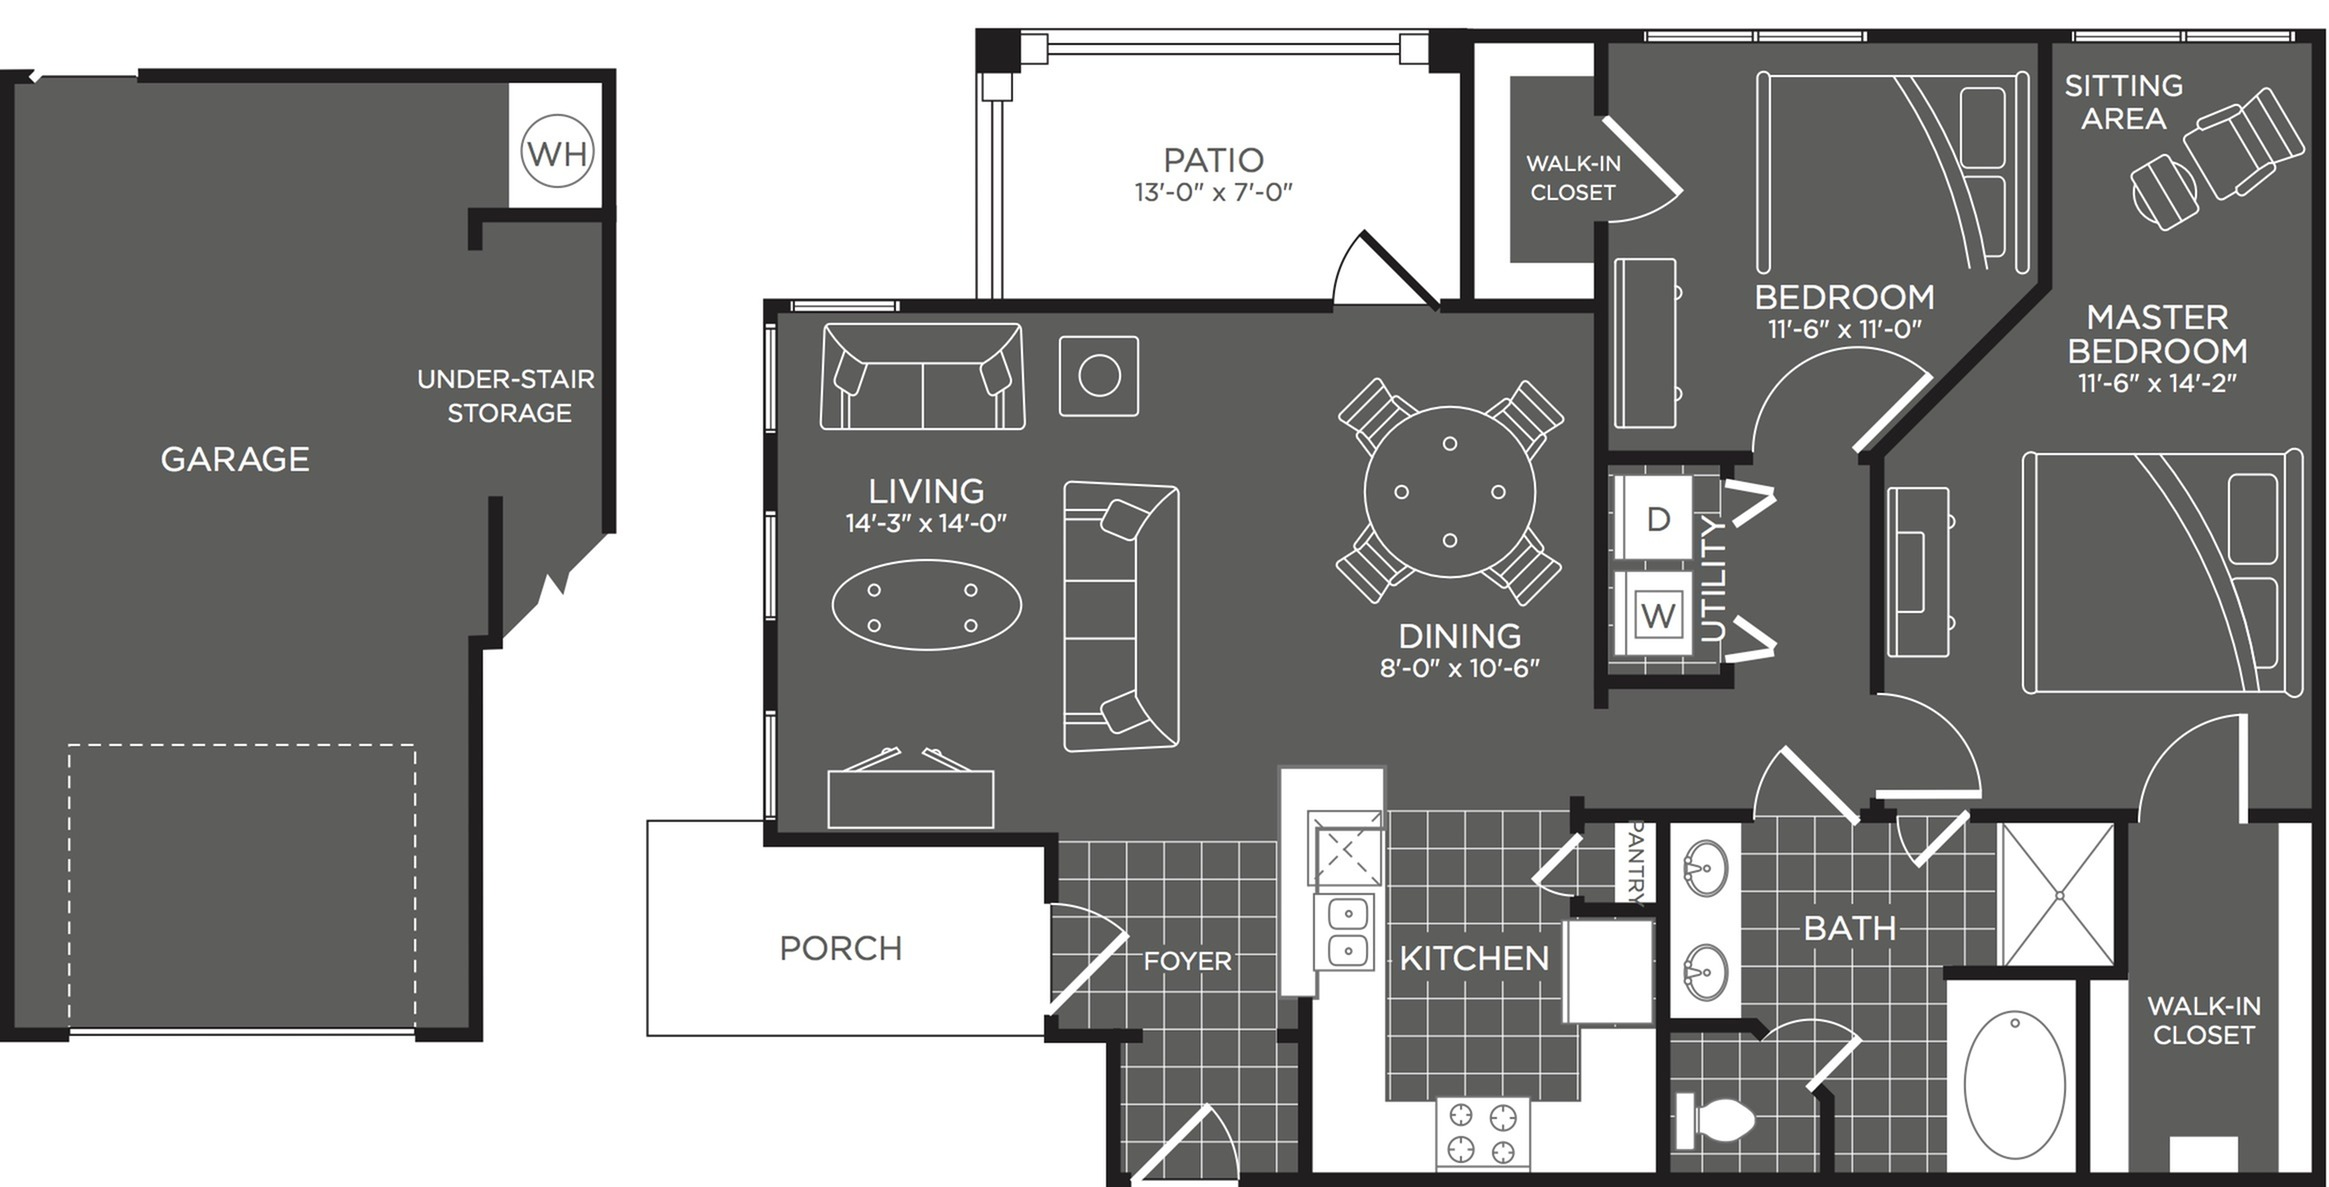 2 Bedroom Floor Plan | San Antonio Apartments | The Mansions at Briggs Ranch